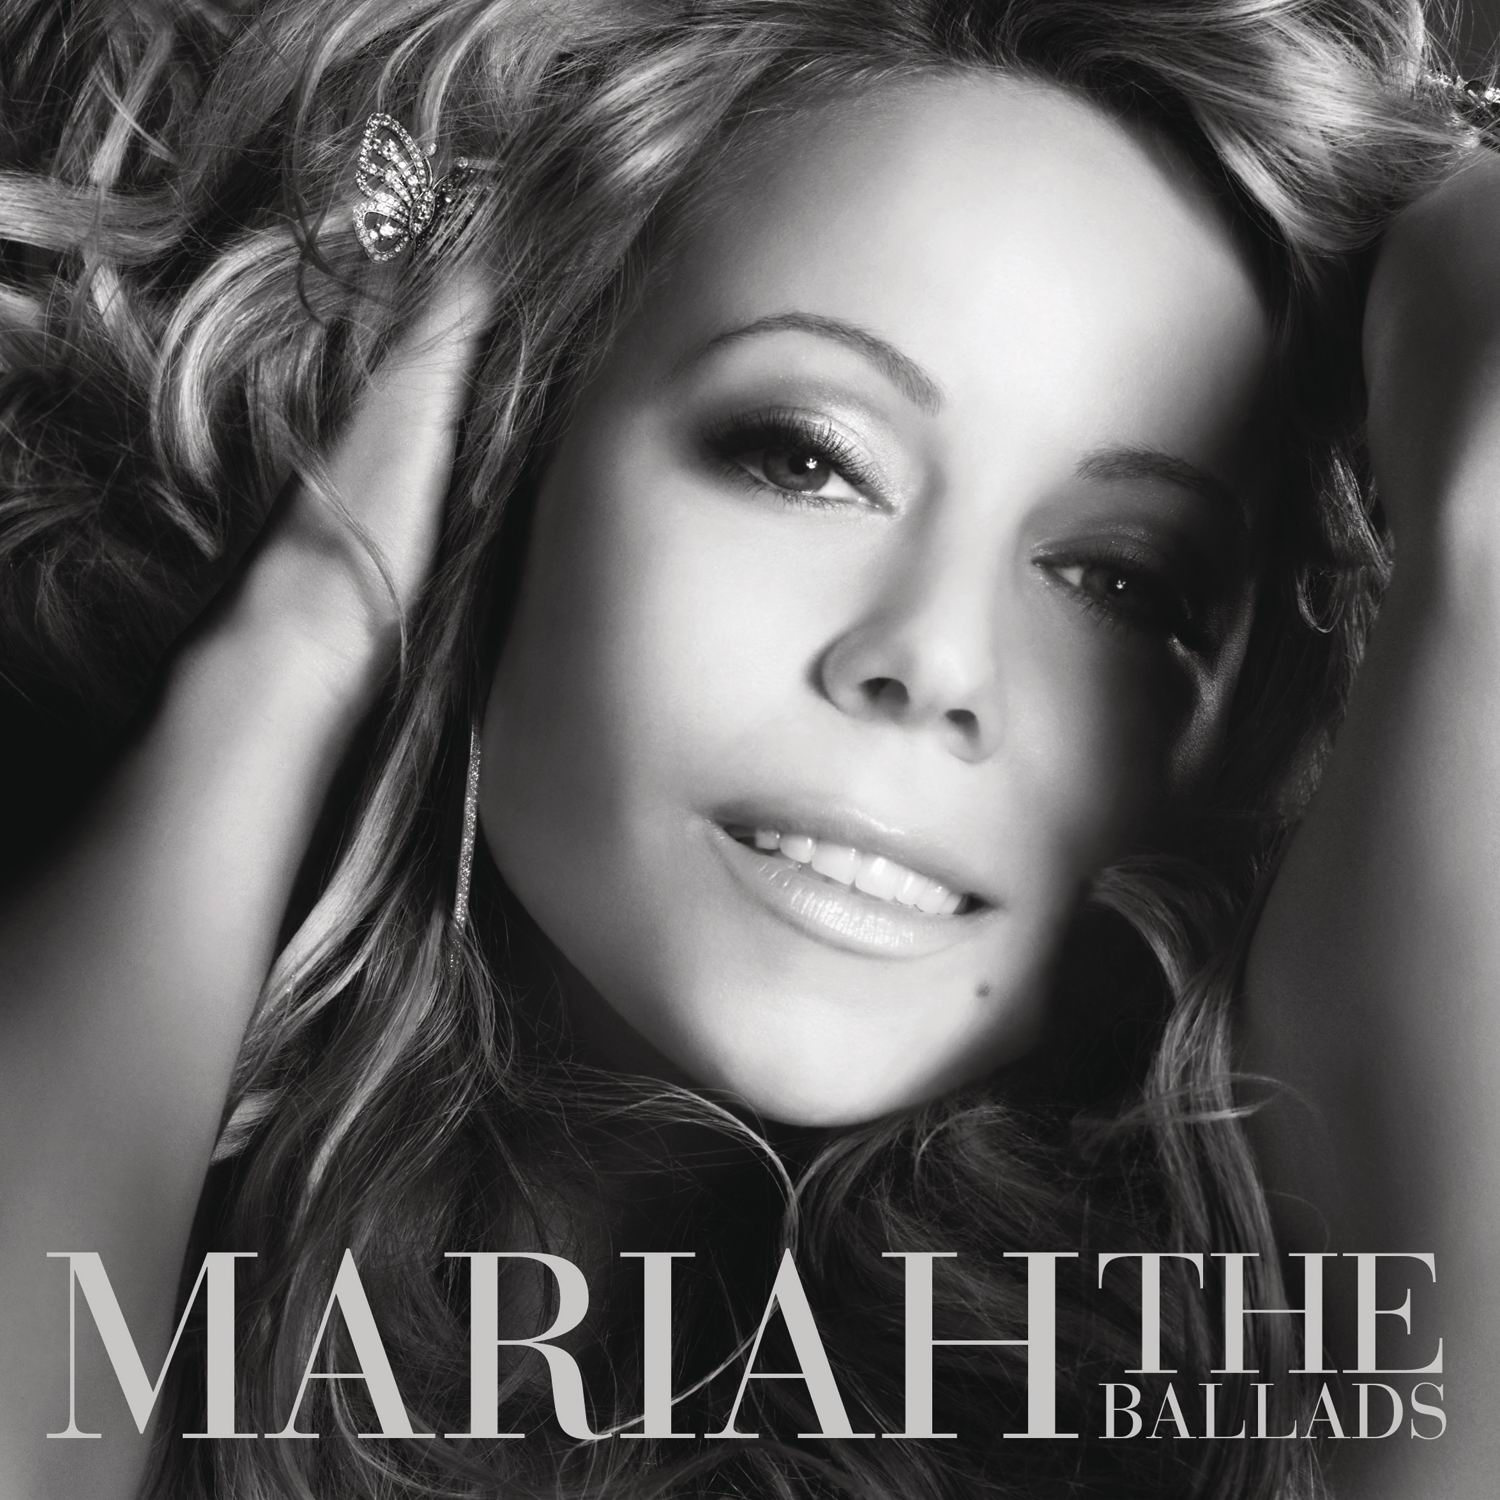 Mariah Carey - The Ballads Mariah Carey Songs